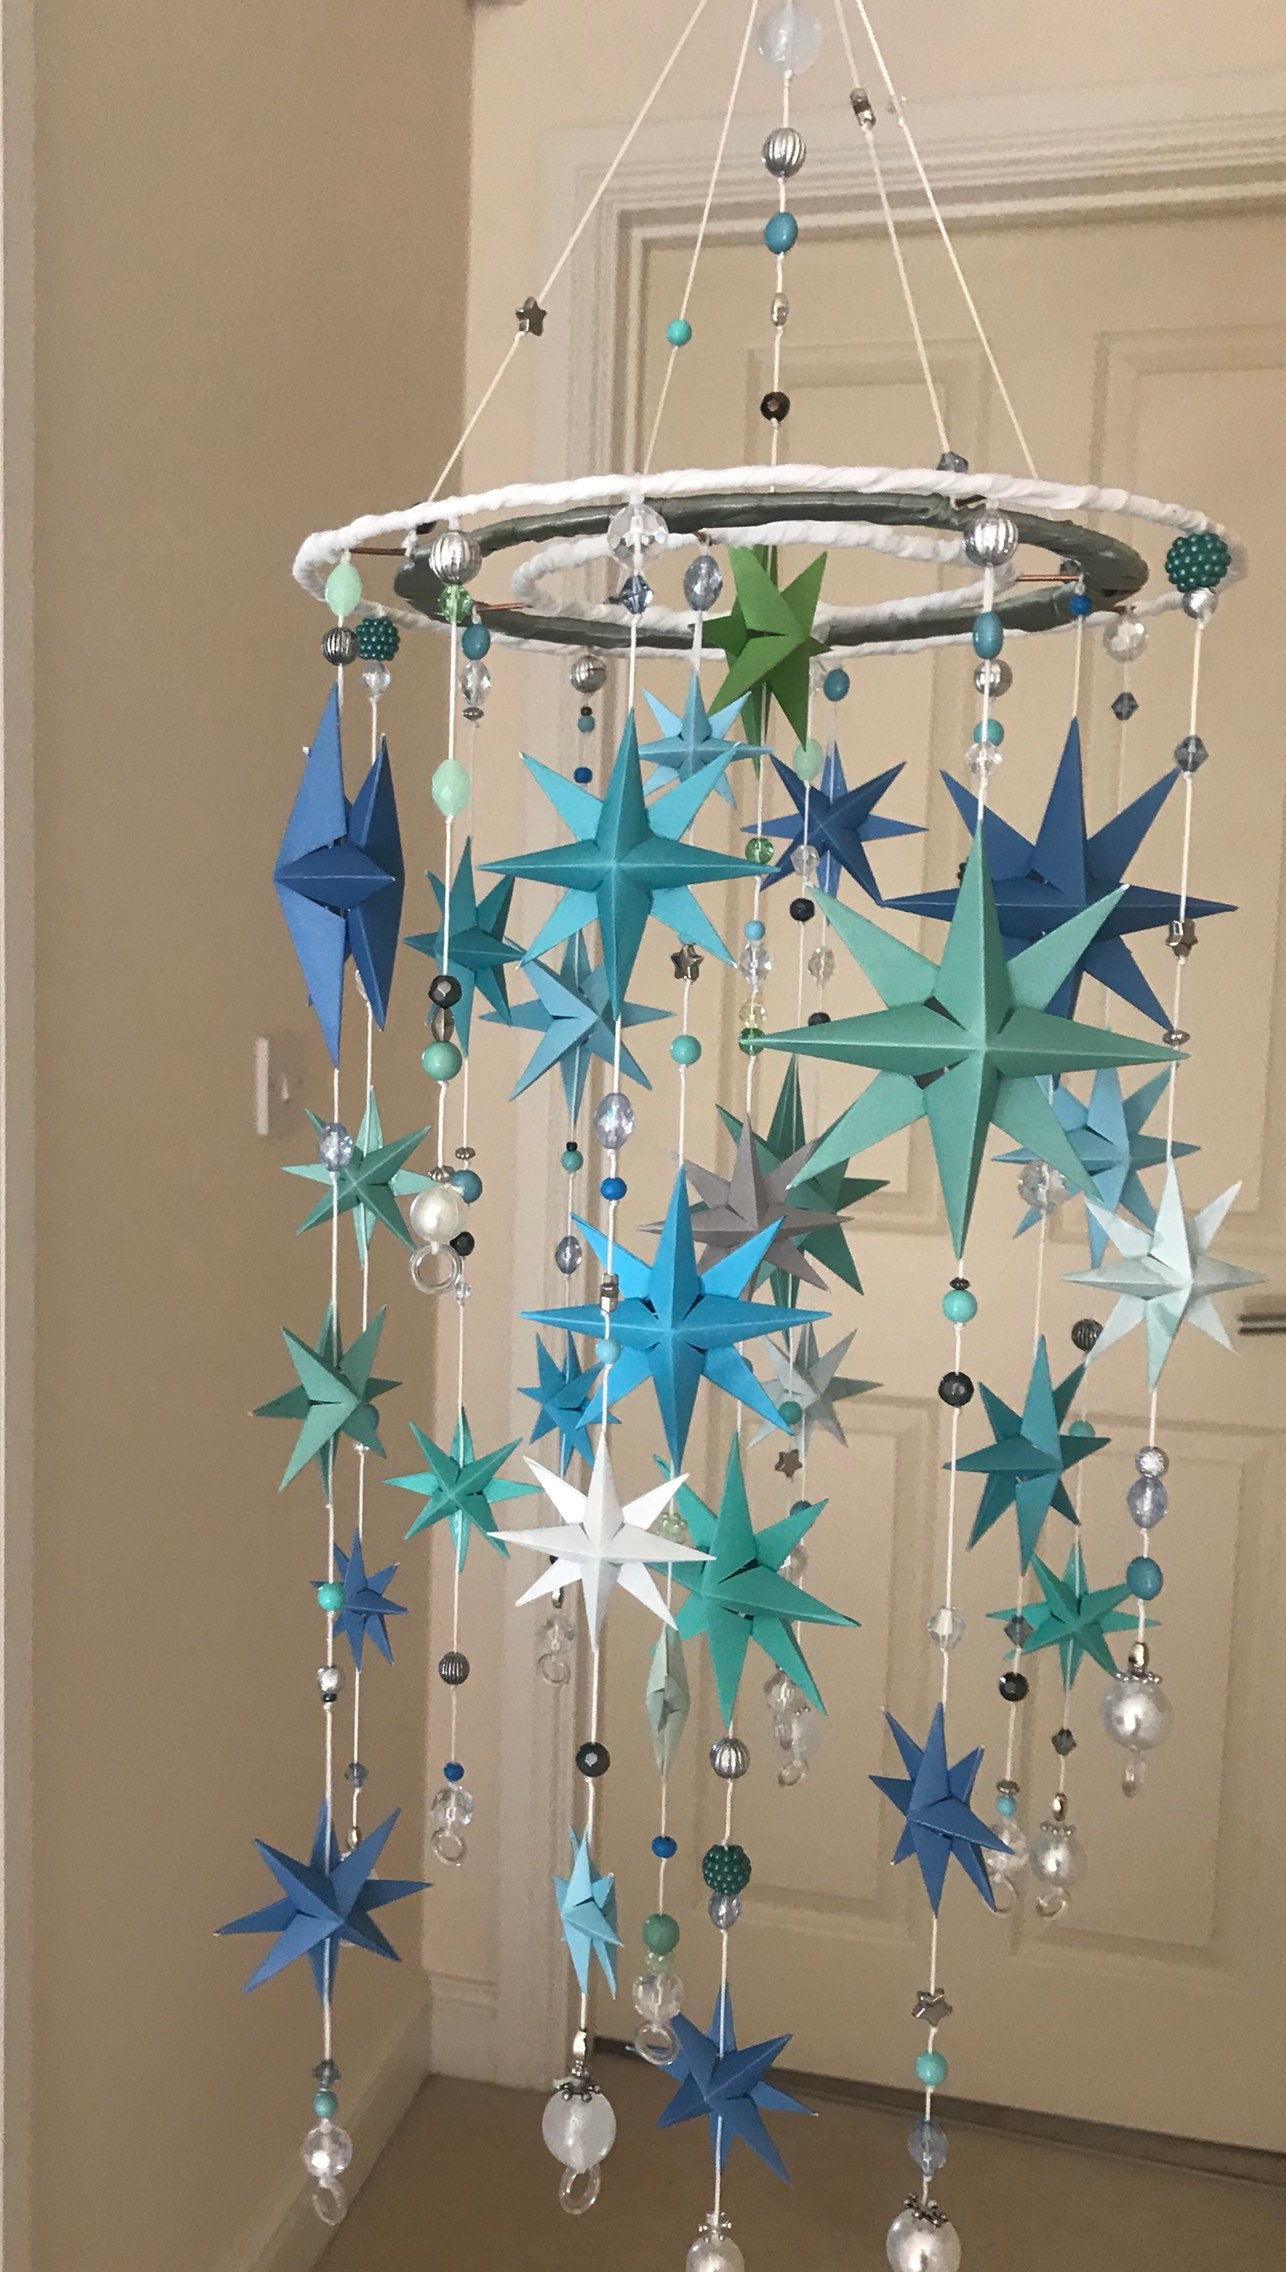 Skyfall.. a shower of stars. A mobile for that special person to wake up to.